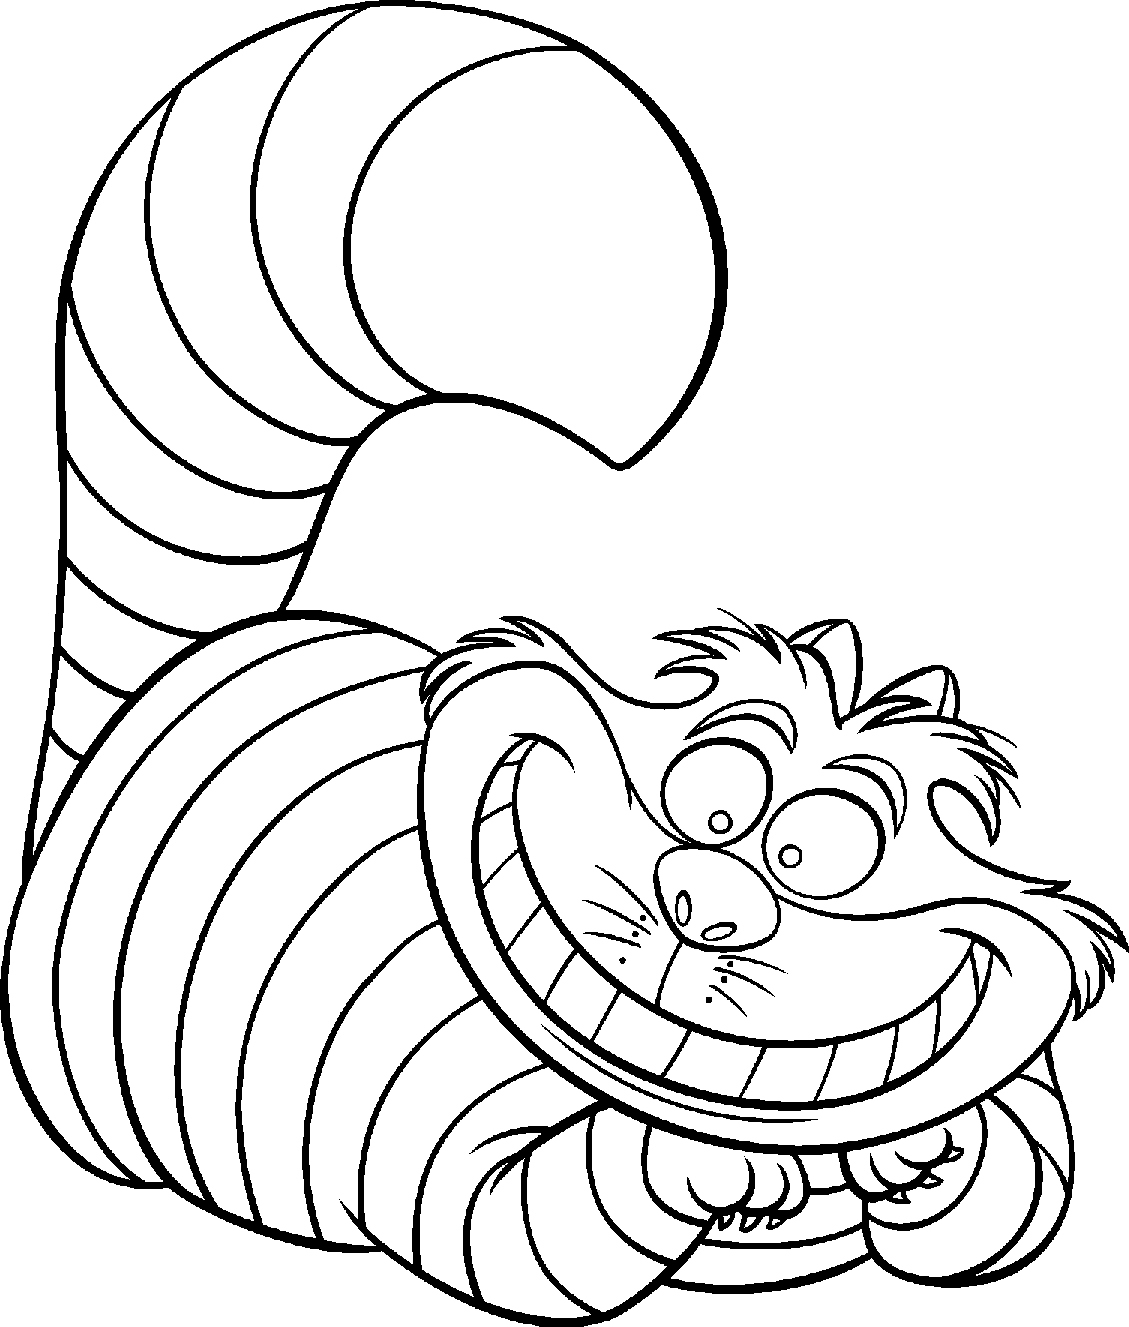 disnep coloring pages - photo#10